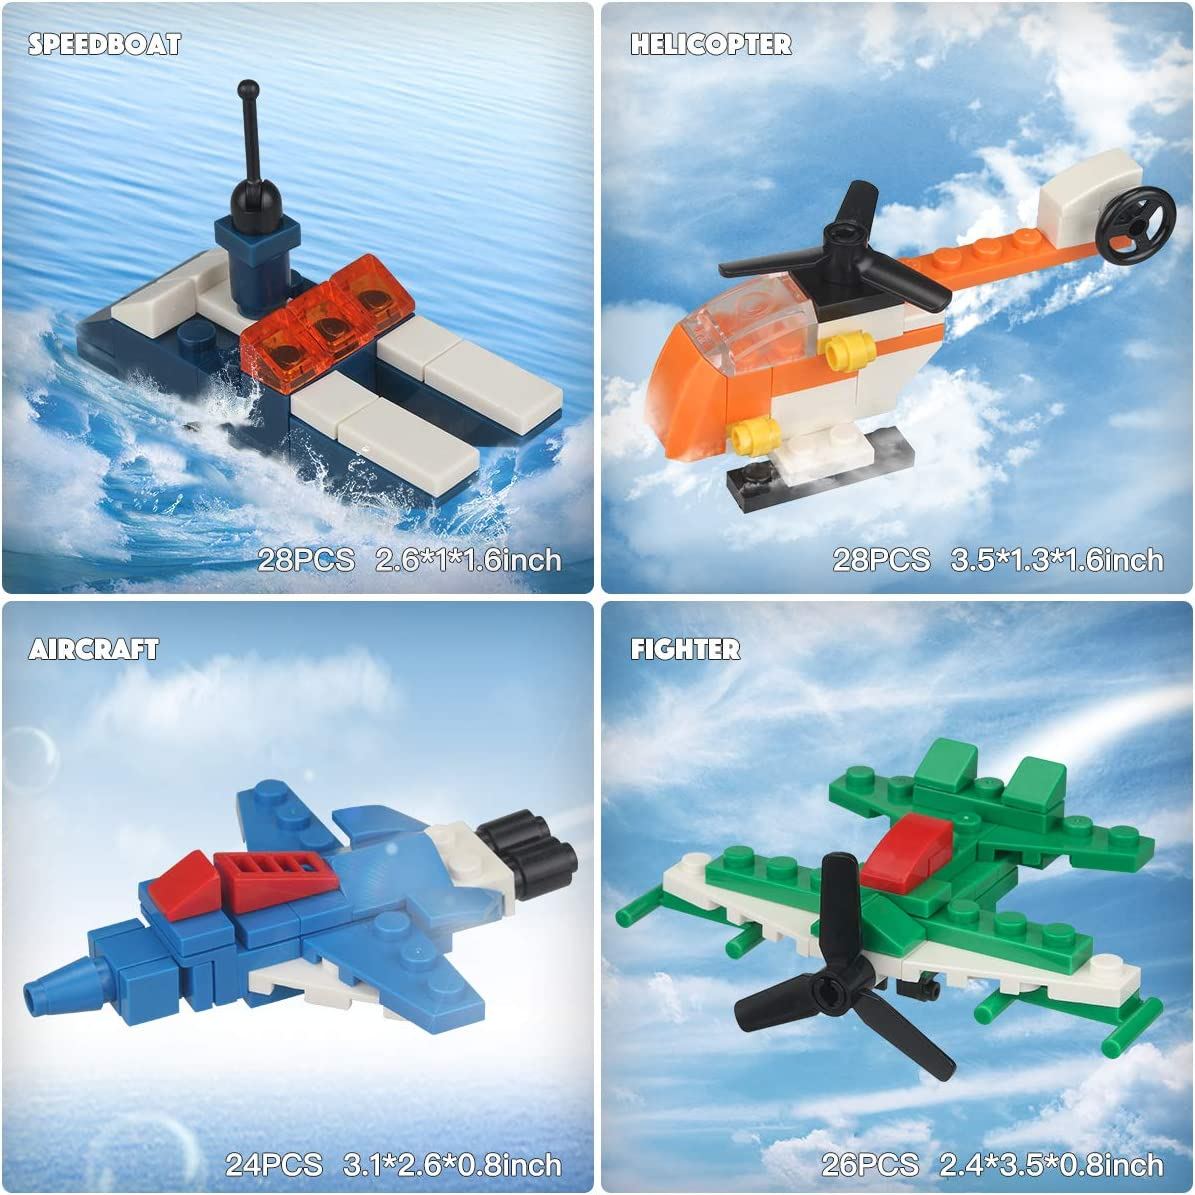 10 Vehicle Building Blocks Mini Building Blocks Sets 26 Pack Mini Figures Toys /& Mini Building Vehicles Set Includes 16 Minifigures Styles May Vary from Image